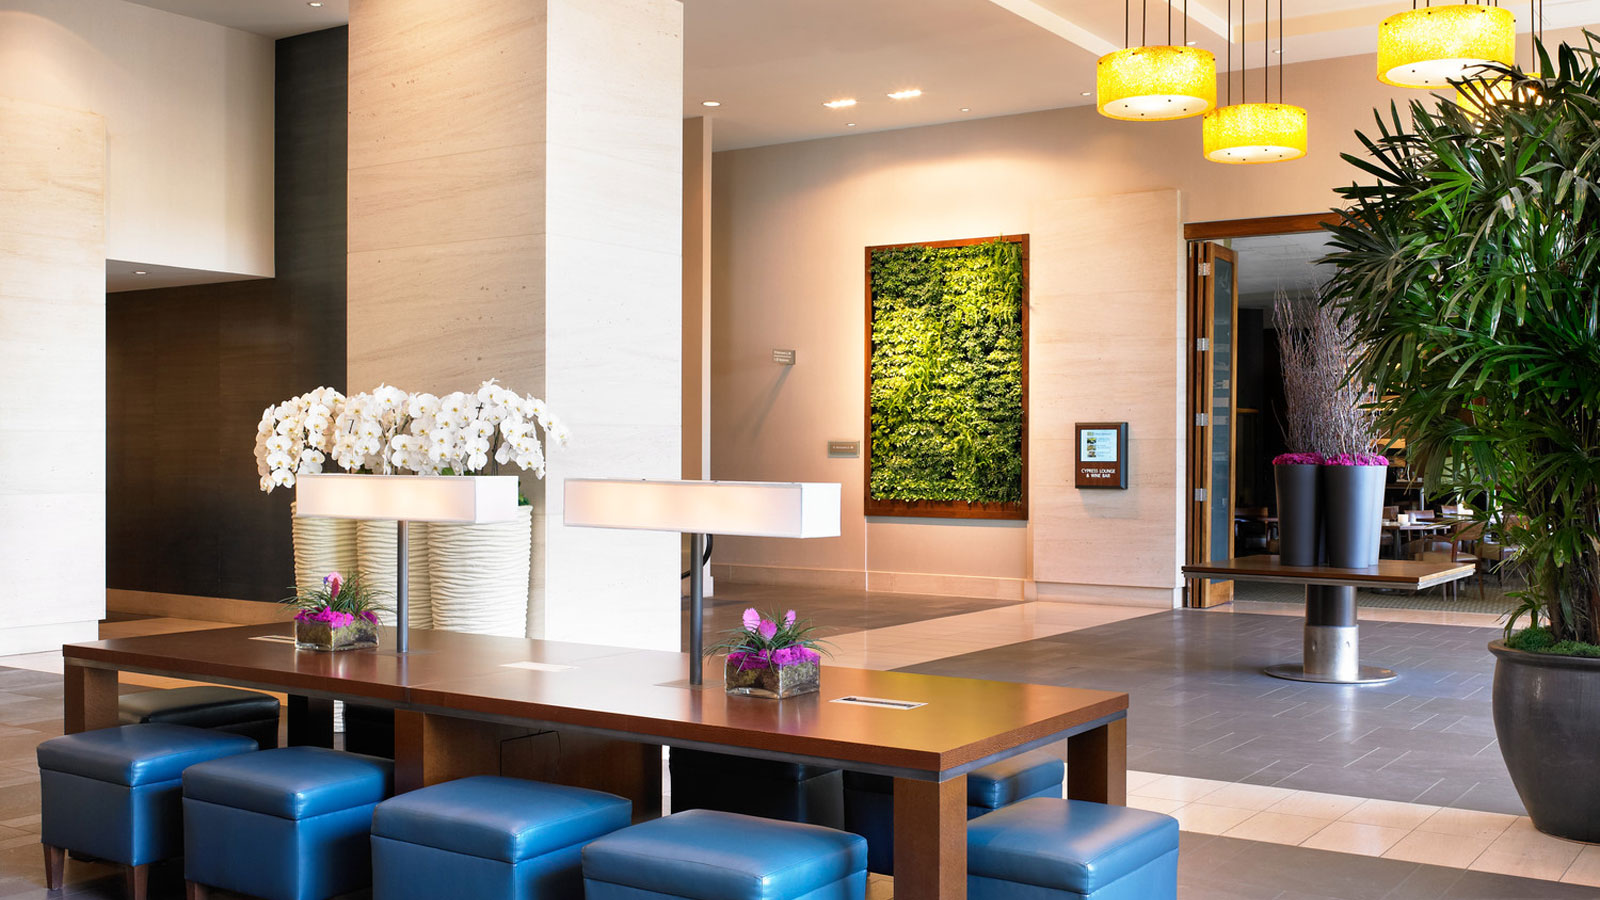 Bellevue Hotel Features - Concierge Services